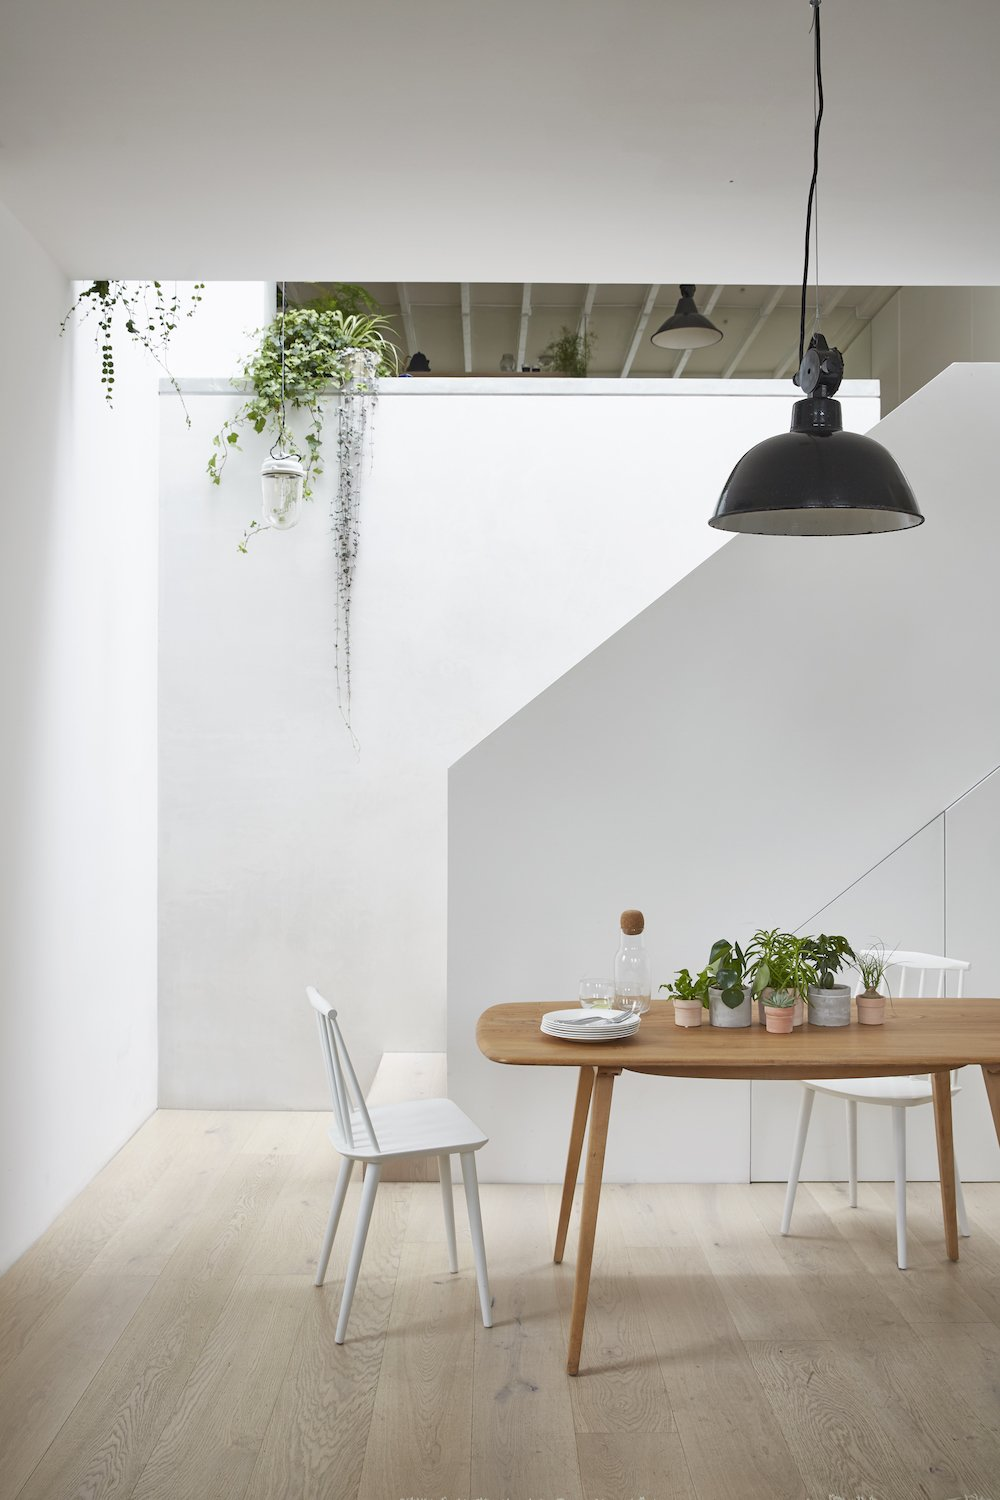 Dining Room, Lamps, Chair, Table, Medium Hardwood Floor, and Ceiling Lighting A new staircase and roof light, brings natural light into the dining area, overlooked by the kitchen above  Hackney Mews House by HUTCH design